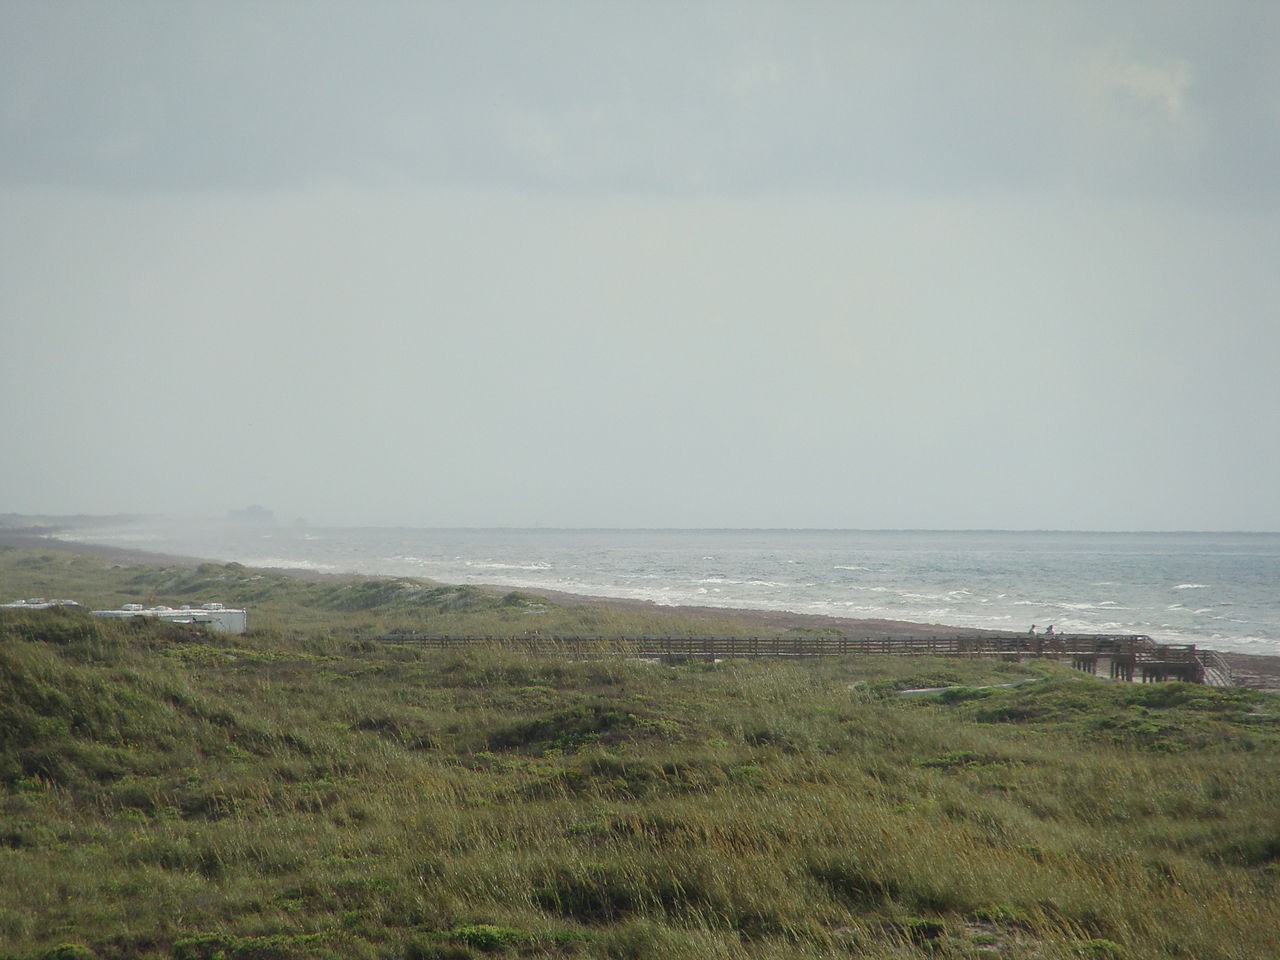 Best Camping Spot In Texas For Outdoor Fun-Padre Island National Seashore